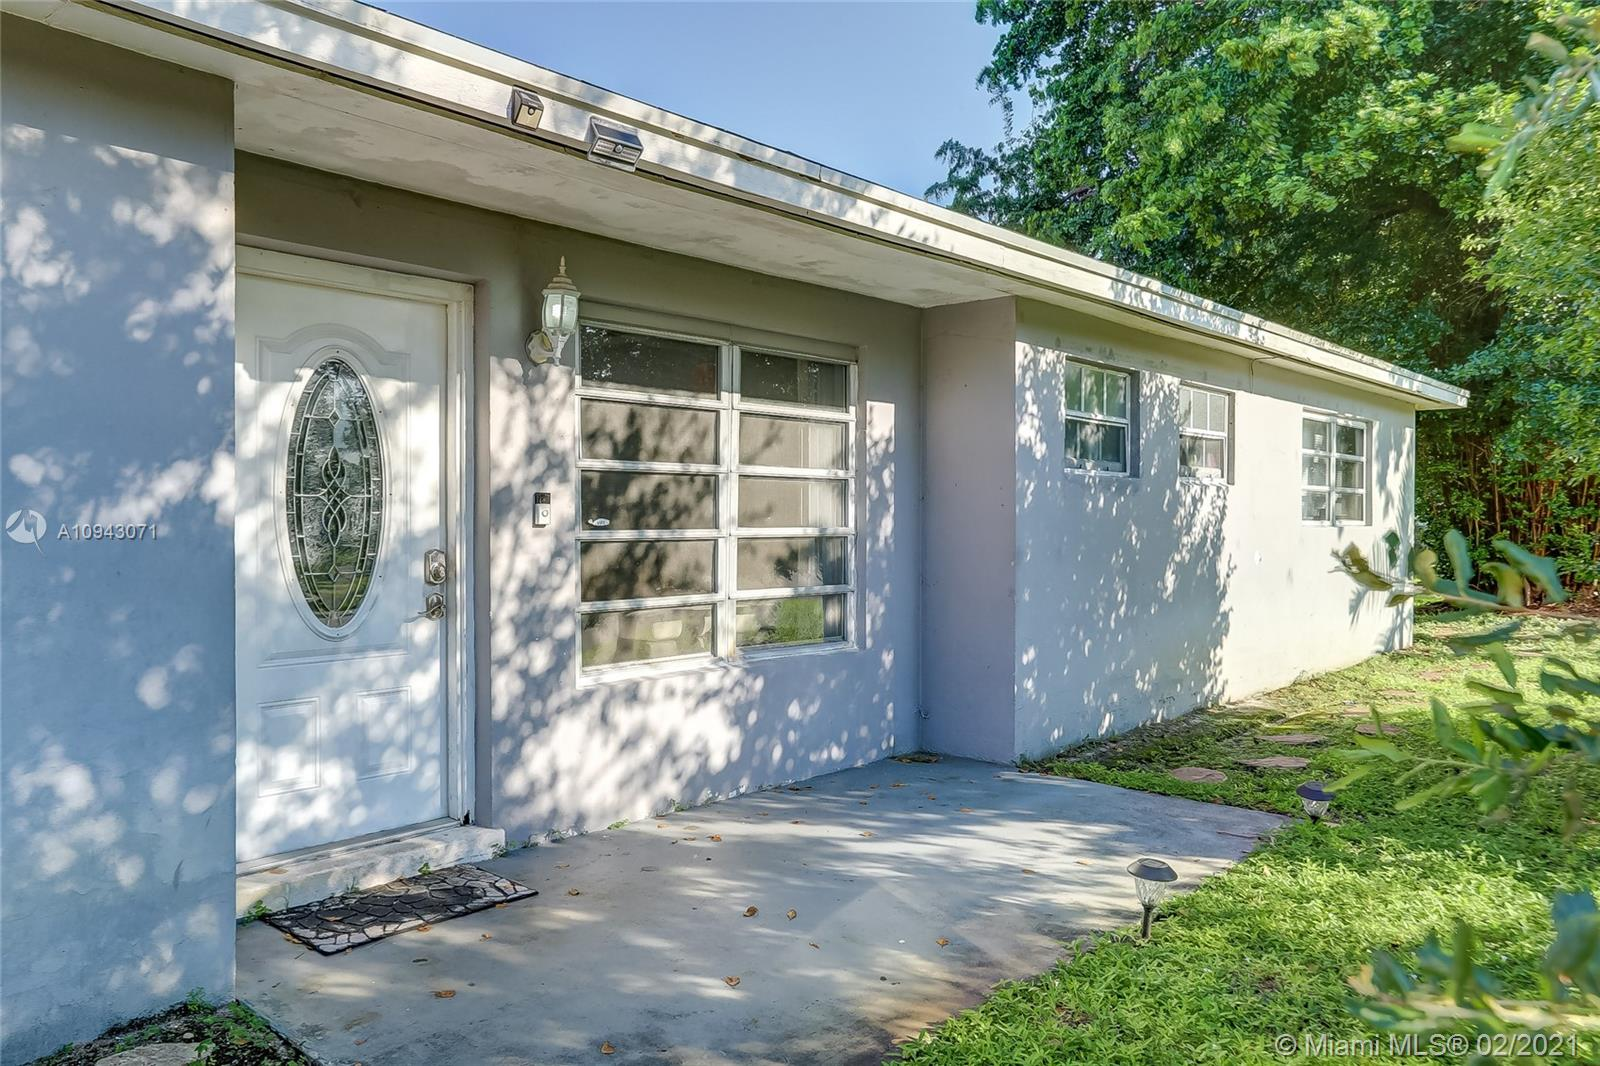 AMAZING INVESTOR SPECIAL, CORNER LOT, 4 FULL BEDROOMS / 4 BATHROOMS + DEN WITH NO HOA, BRIGHT SINGLE FAMILY HOME, SPACIOUS PRIVATE GATED BACKYARD, BONUS CARPORT SPACES TO ACCOMODATE 6 CARS! NEW ROOF, TILE AND WOODEN FLOORS THROUGHOUT, WOOD KITCHEN CABINETRY, LARGE LIVING ROOM, SEPARATE DINING AREA, TILED BATHROOMS, SPACIOUS BEDROOMS, PRIVATE BACK ENTRY,  SEPARATE LAUNDRY ROOM, 5 CEILING FANS, PLENTY OF CLOSET SPACE AND SPACIOUS FRONT LOT FOR ADDITIONAL LOUNGING!